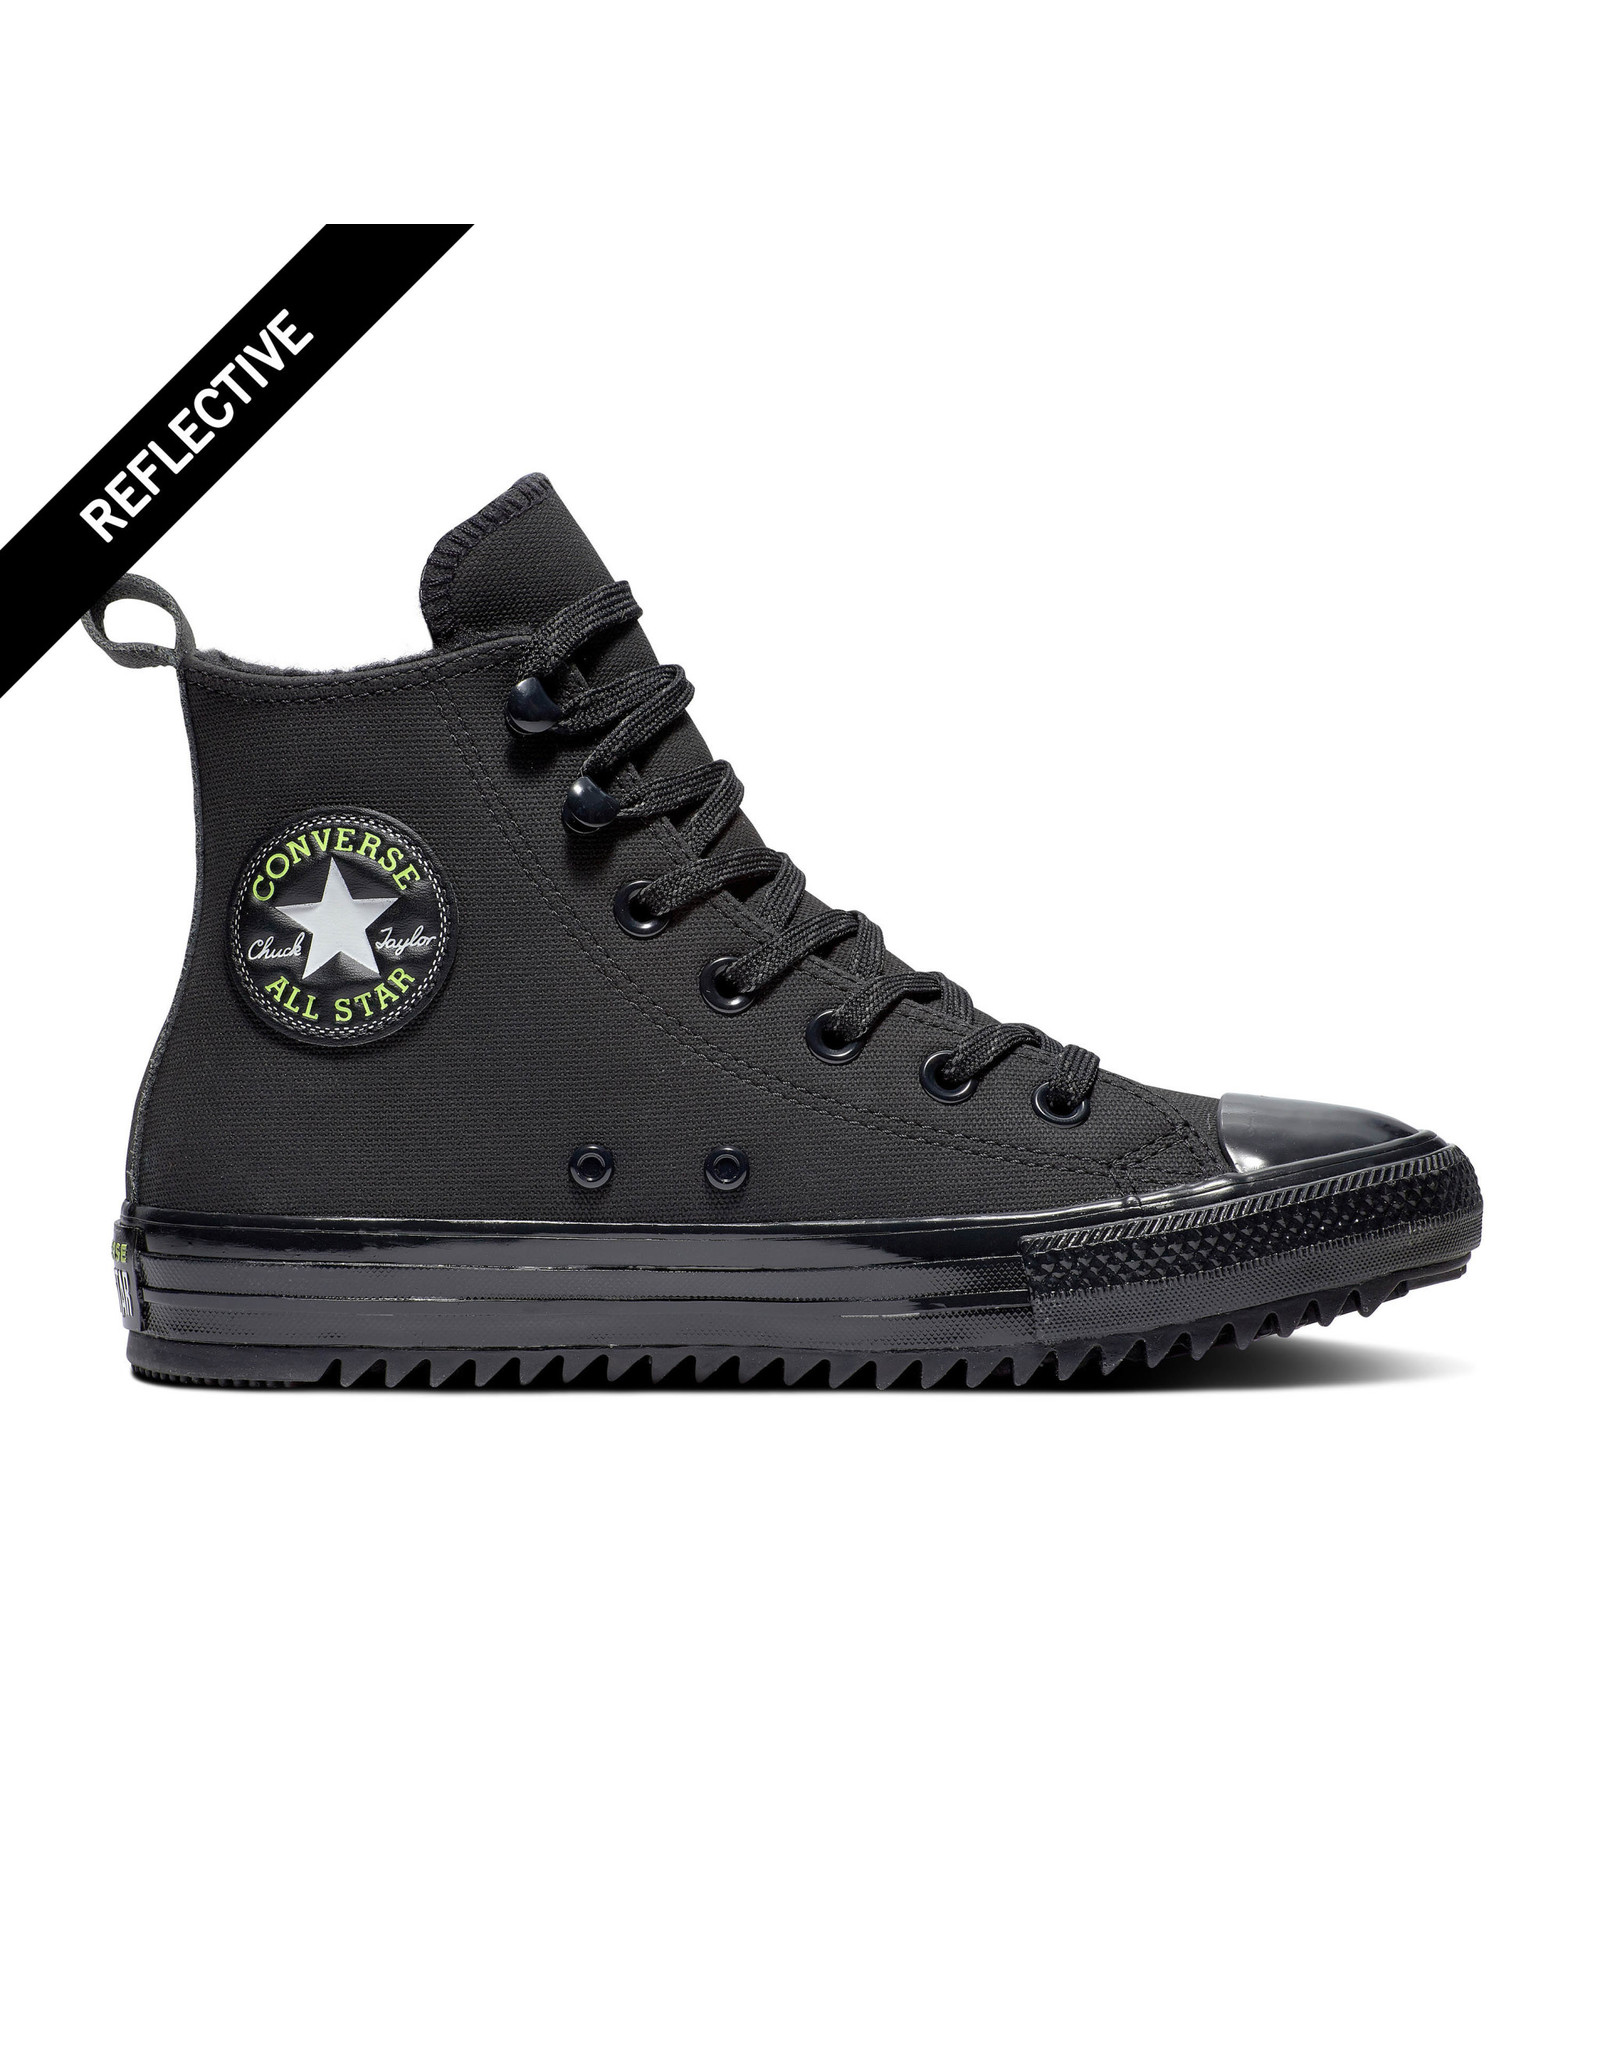 CONVERSE CHUCK TAYLOR ALL STAR HIKER BLACK/LEMON VENOM/BLACK  C20BOR-169461C